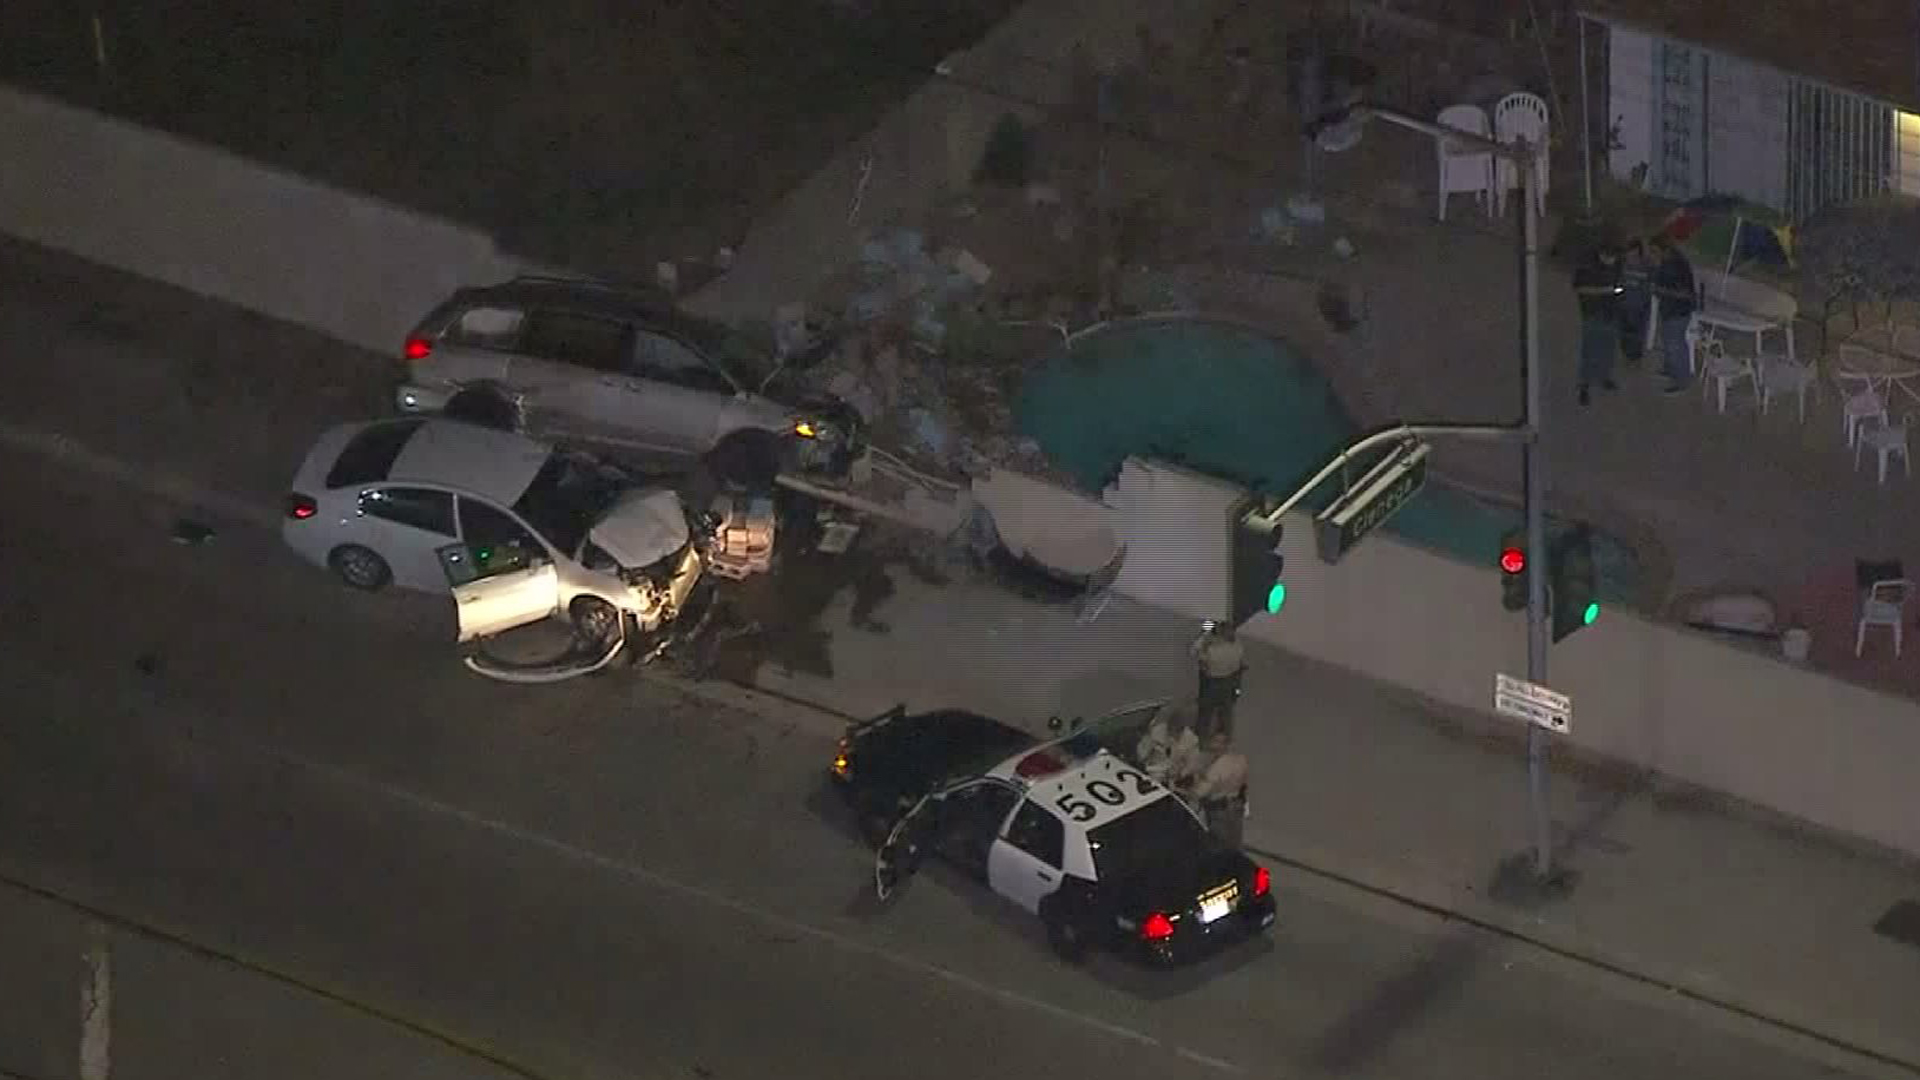 Two cars involved in a crash following a police pursuit in Covina on Friday night are seen heavily damaged. (Credit: KTLA)